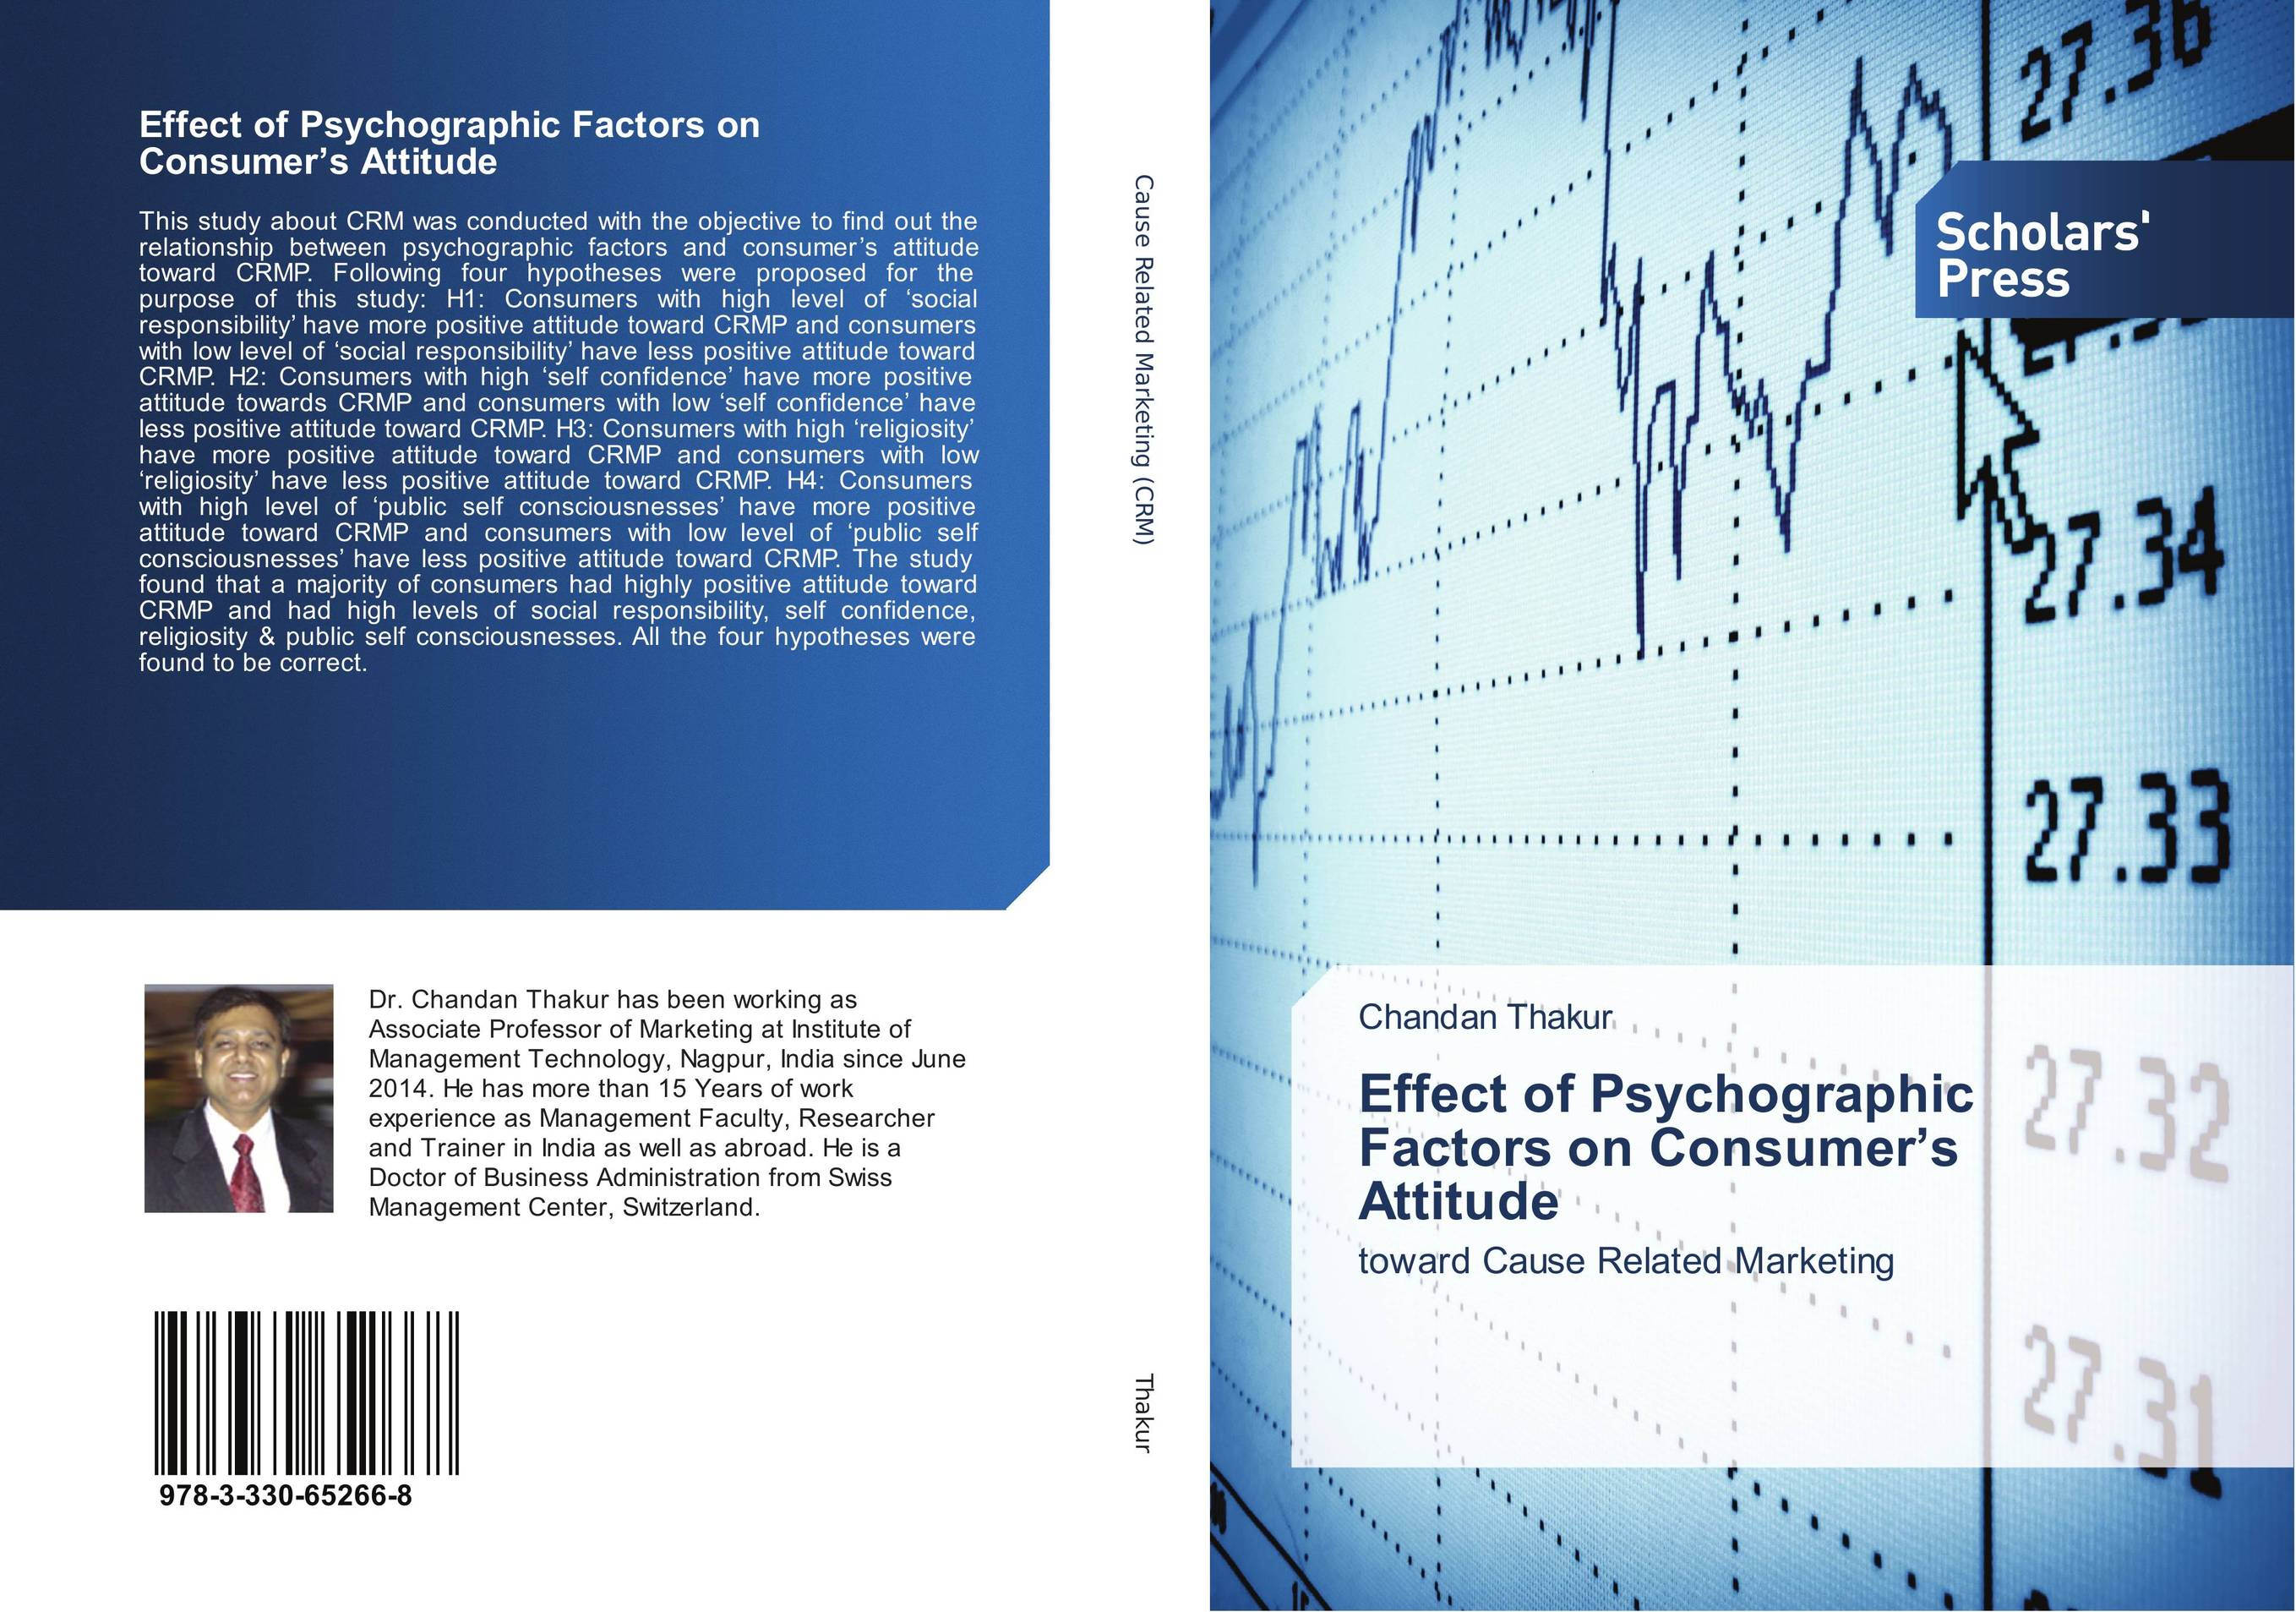 9783330652668 Effect of Psychographic Factors on Consumer's Attitude Chandan T